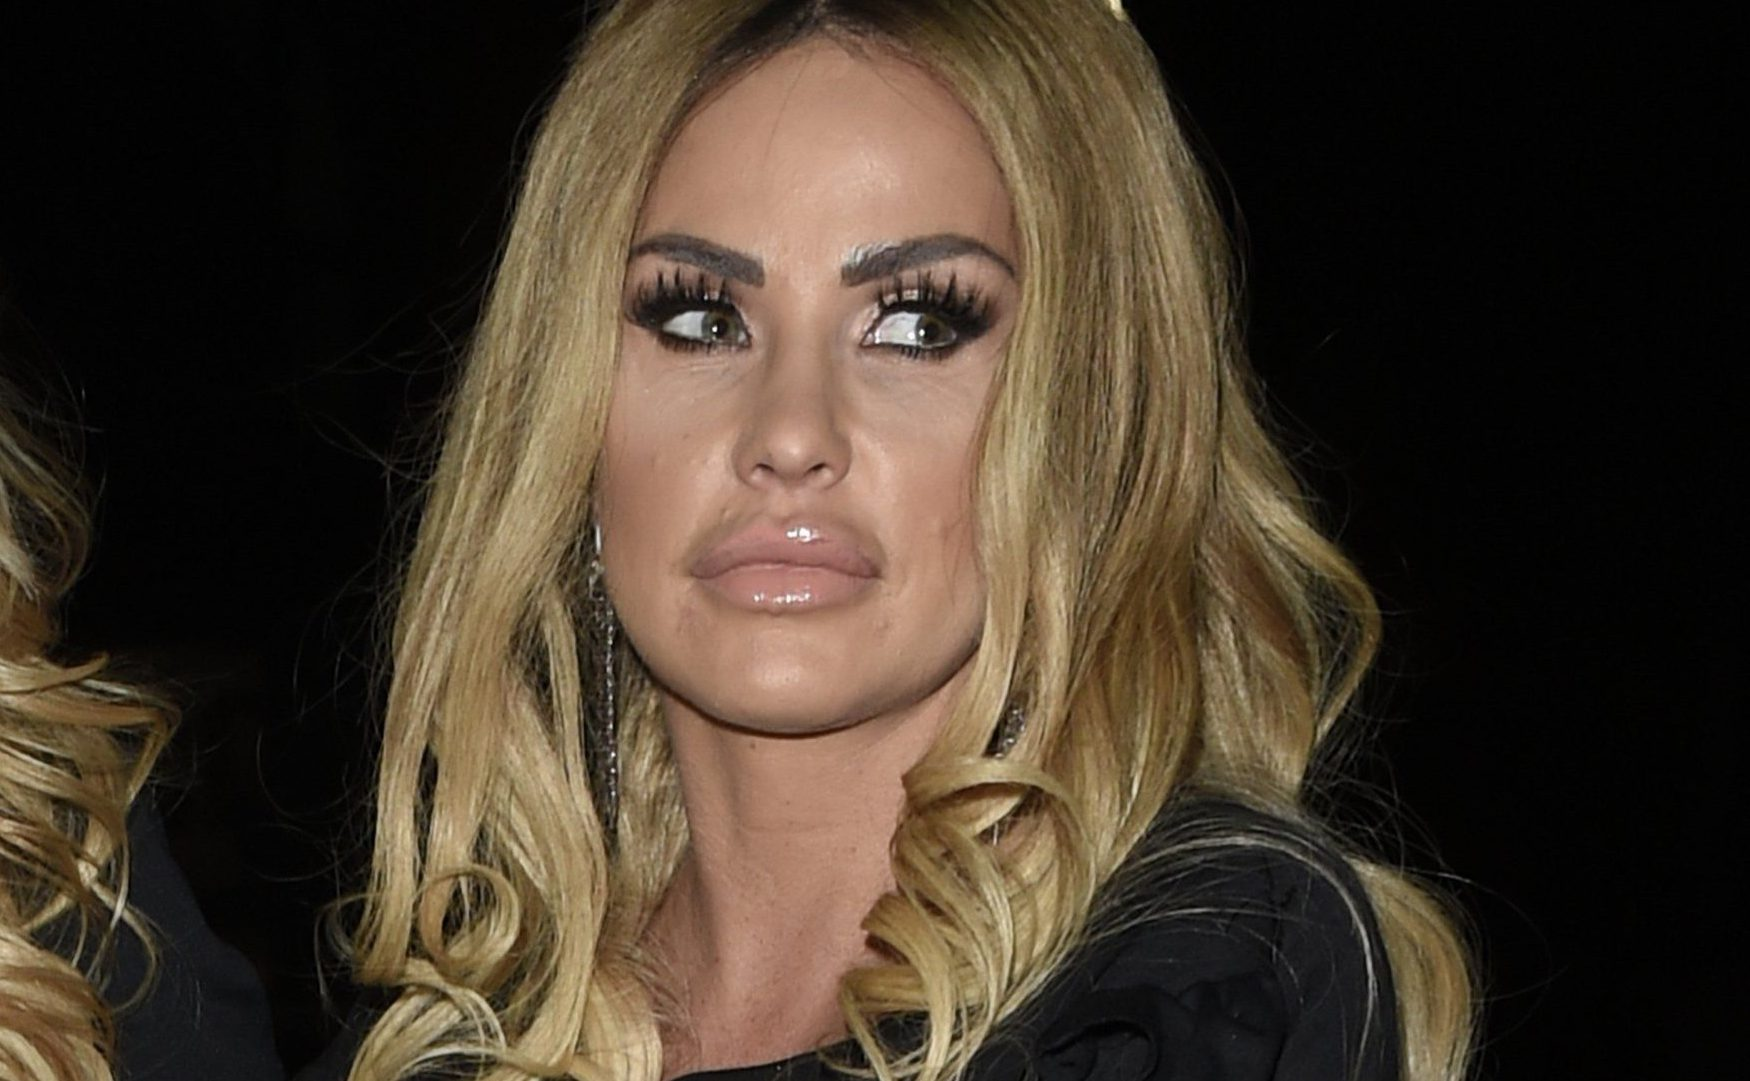 Katie Price has shared a new Instagram video revealing how she got her bee-stung lips in Manchester (Picture: XPOSUREPHOTOS.com)